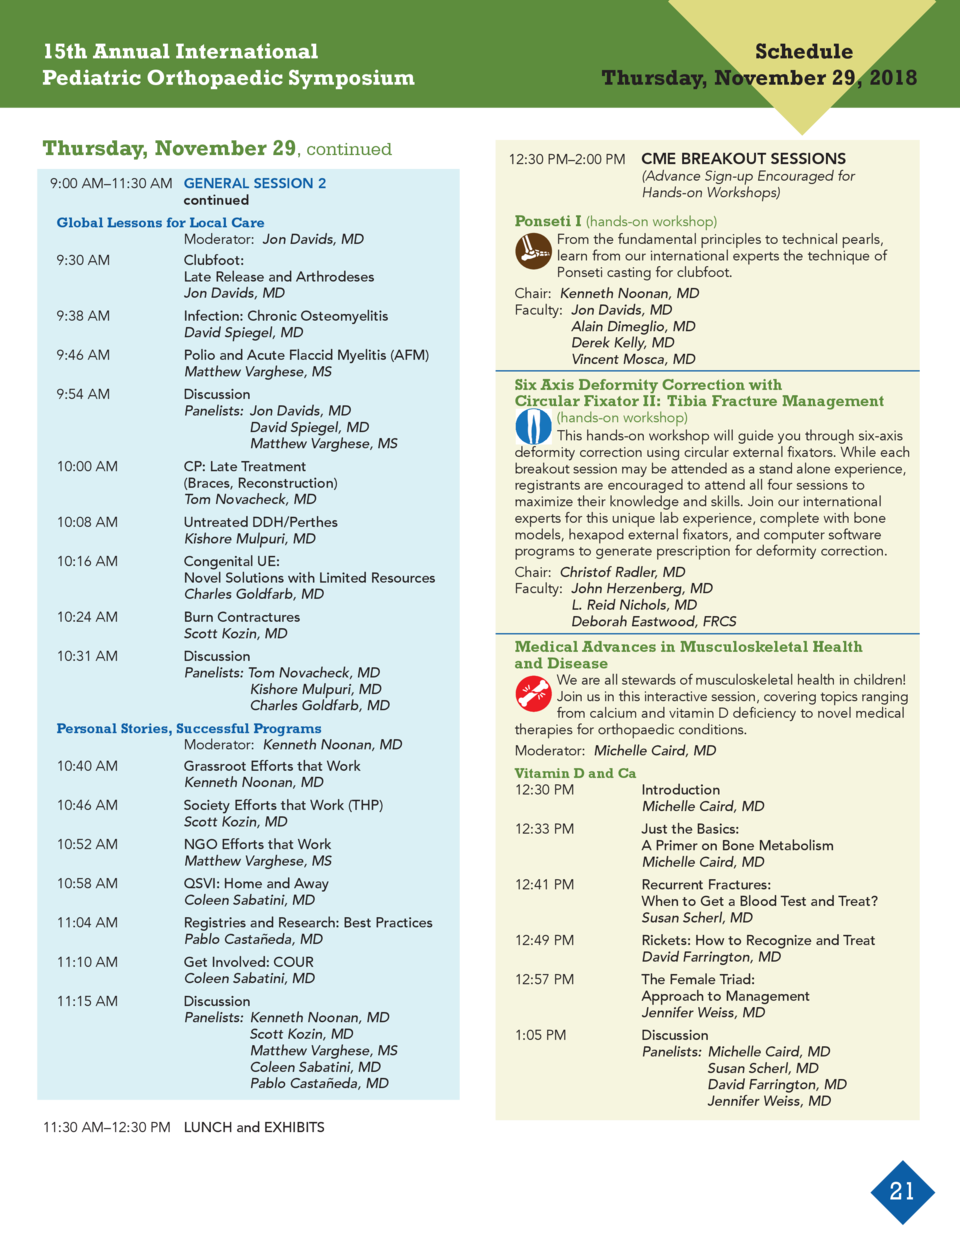 15th Annual International Pediatric Orthopaedic Symposium   Schedule Thursday, November 29, 2018  Thursday, November 29, c...